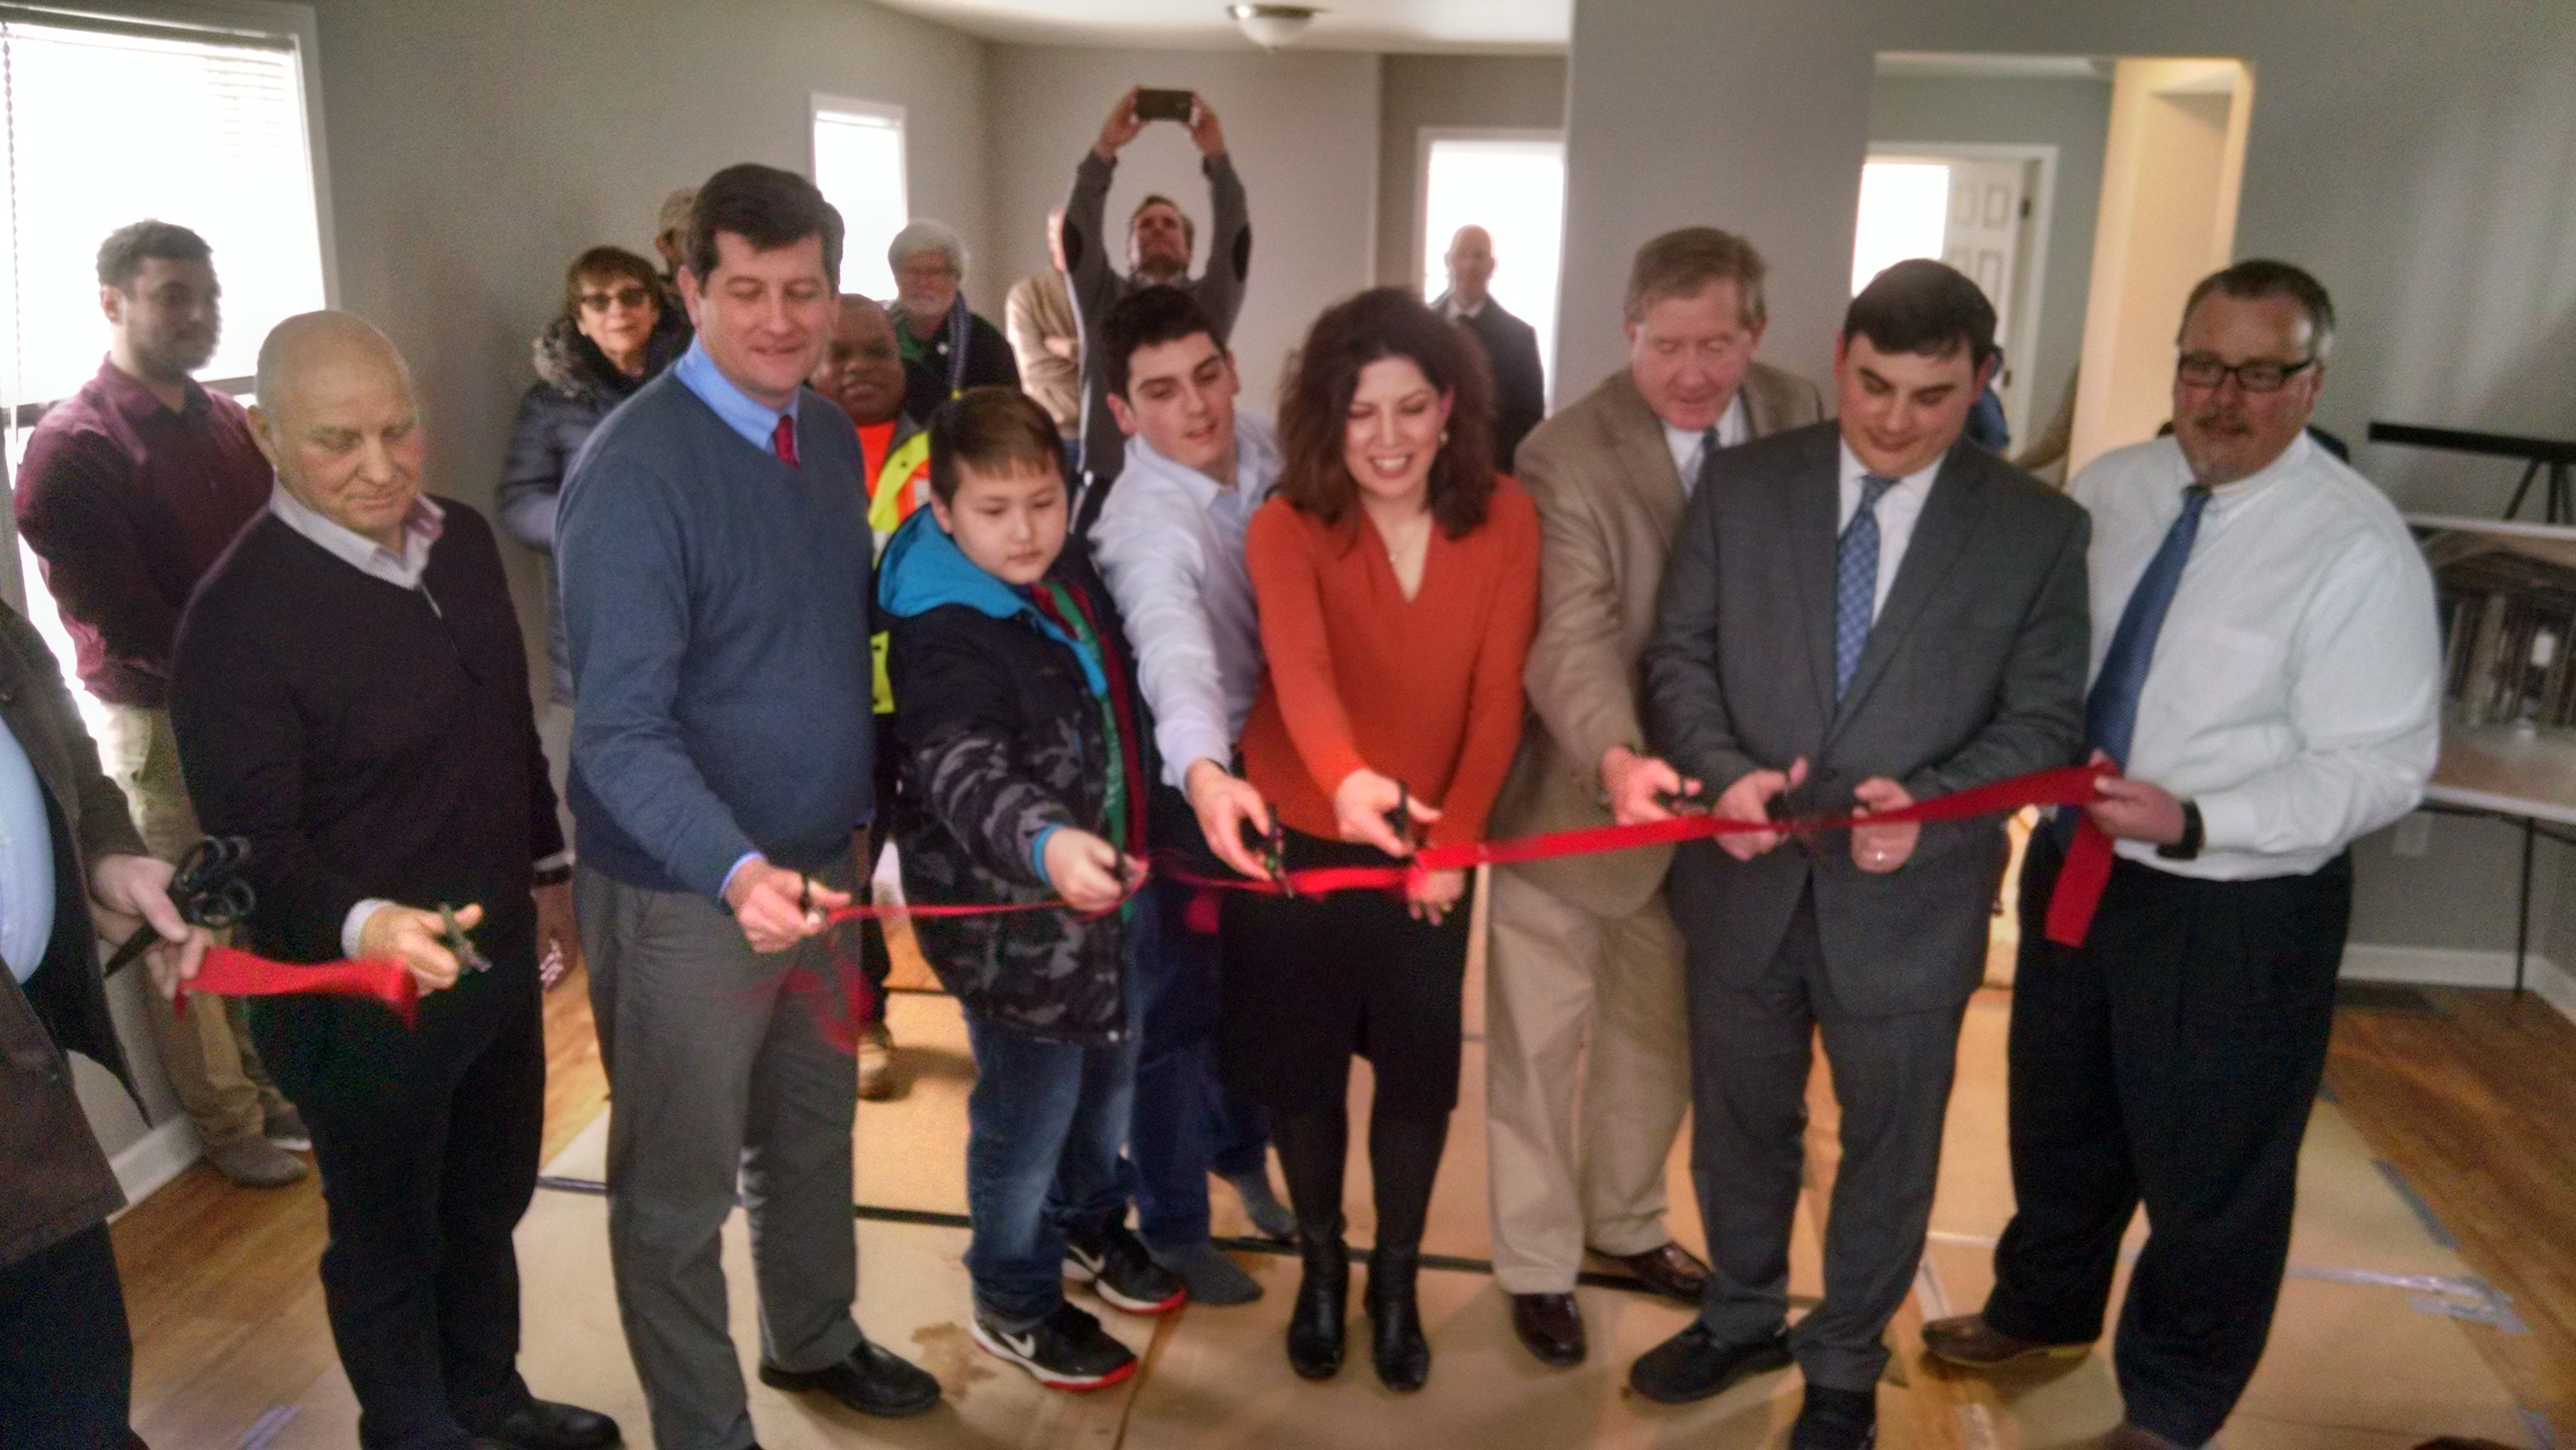 A formerly vacant house in the Village of Kenmore was rehabbed by the Buffalo Erie Niagara Land Improvement Corporation and will soon be sold. Officials marked the completion of the project Tuesday with a ribbon cutting.